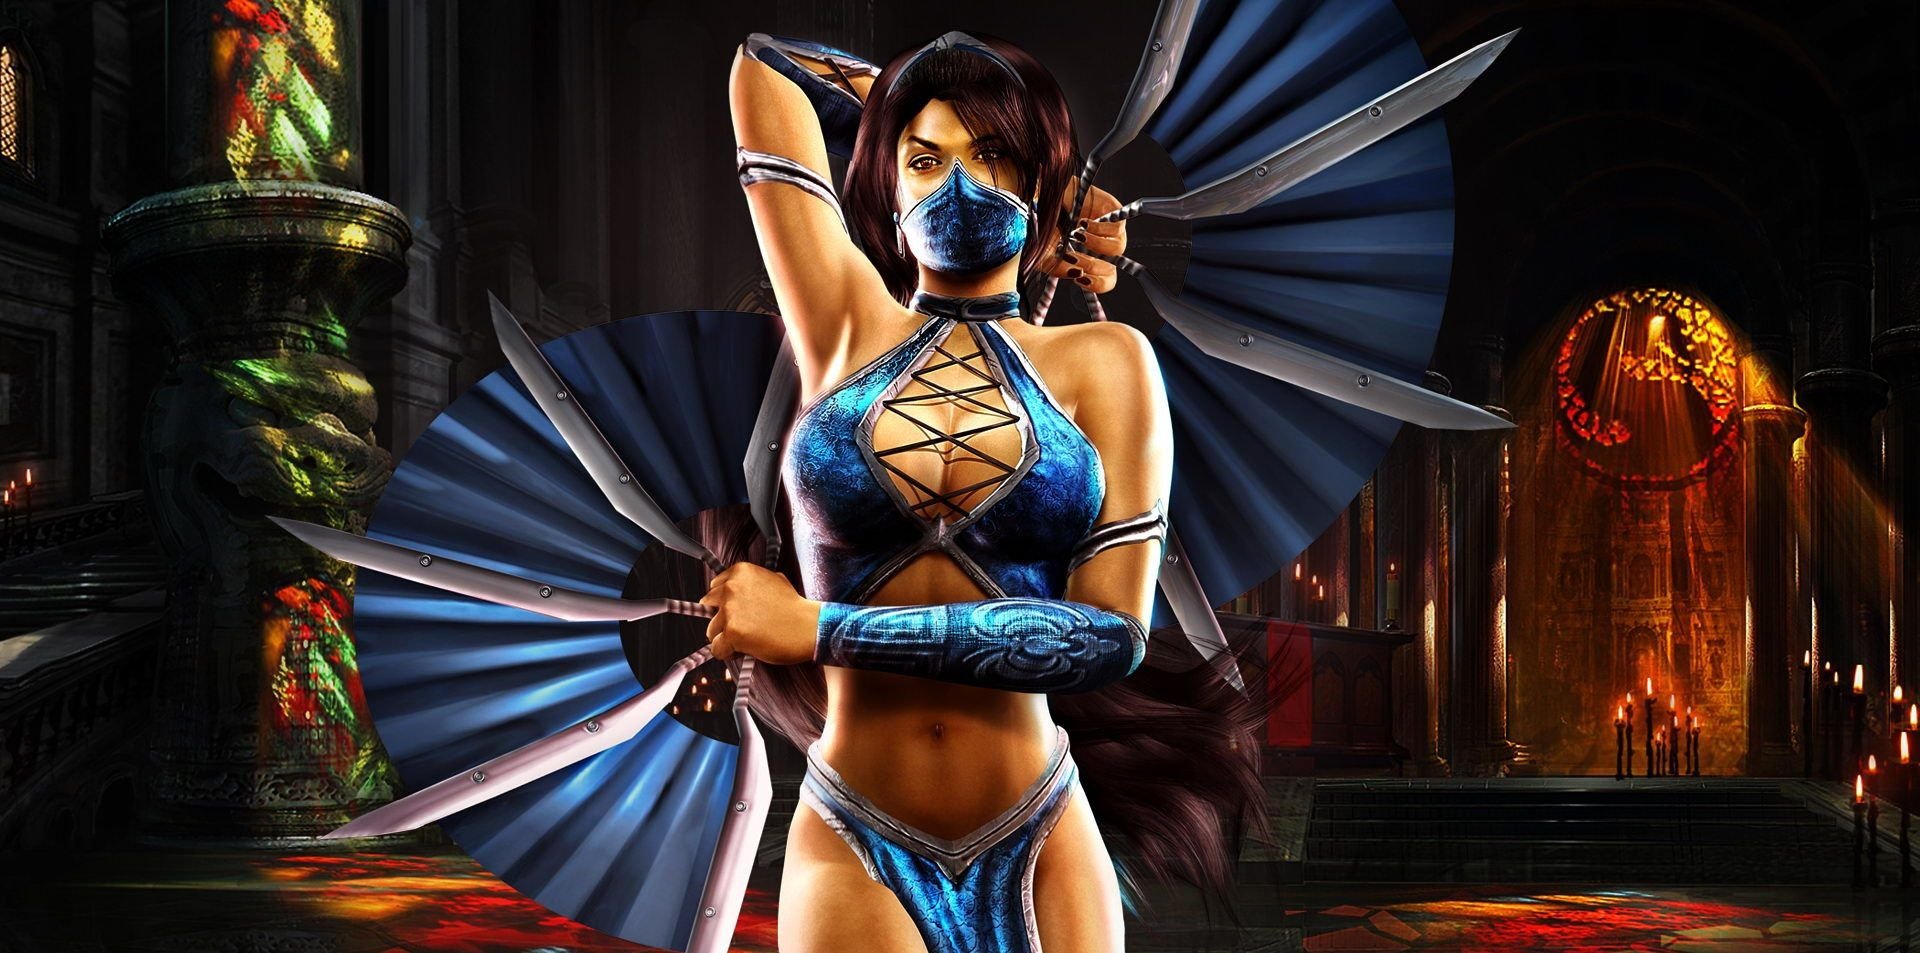 katona naked on mortal kombat